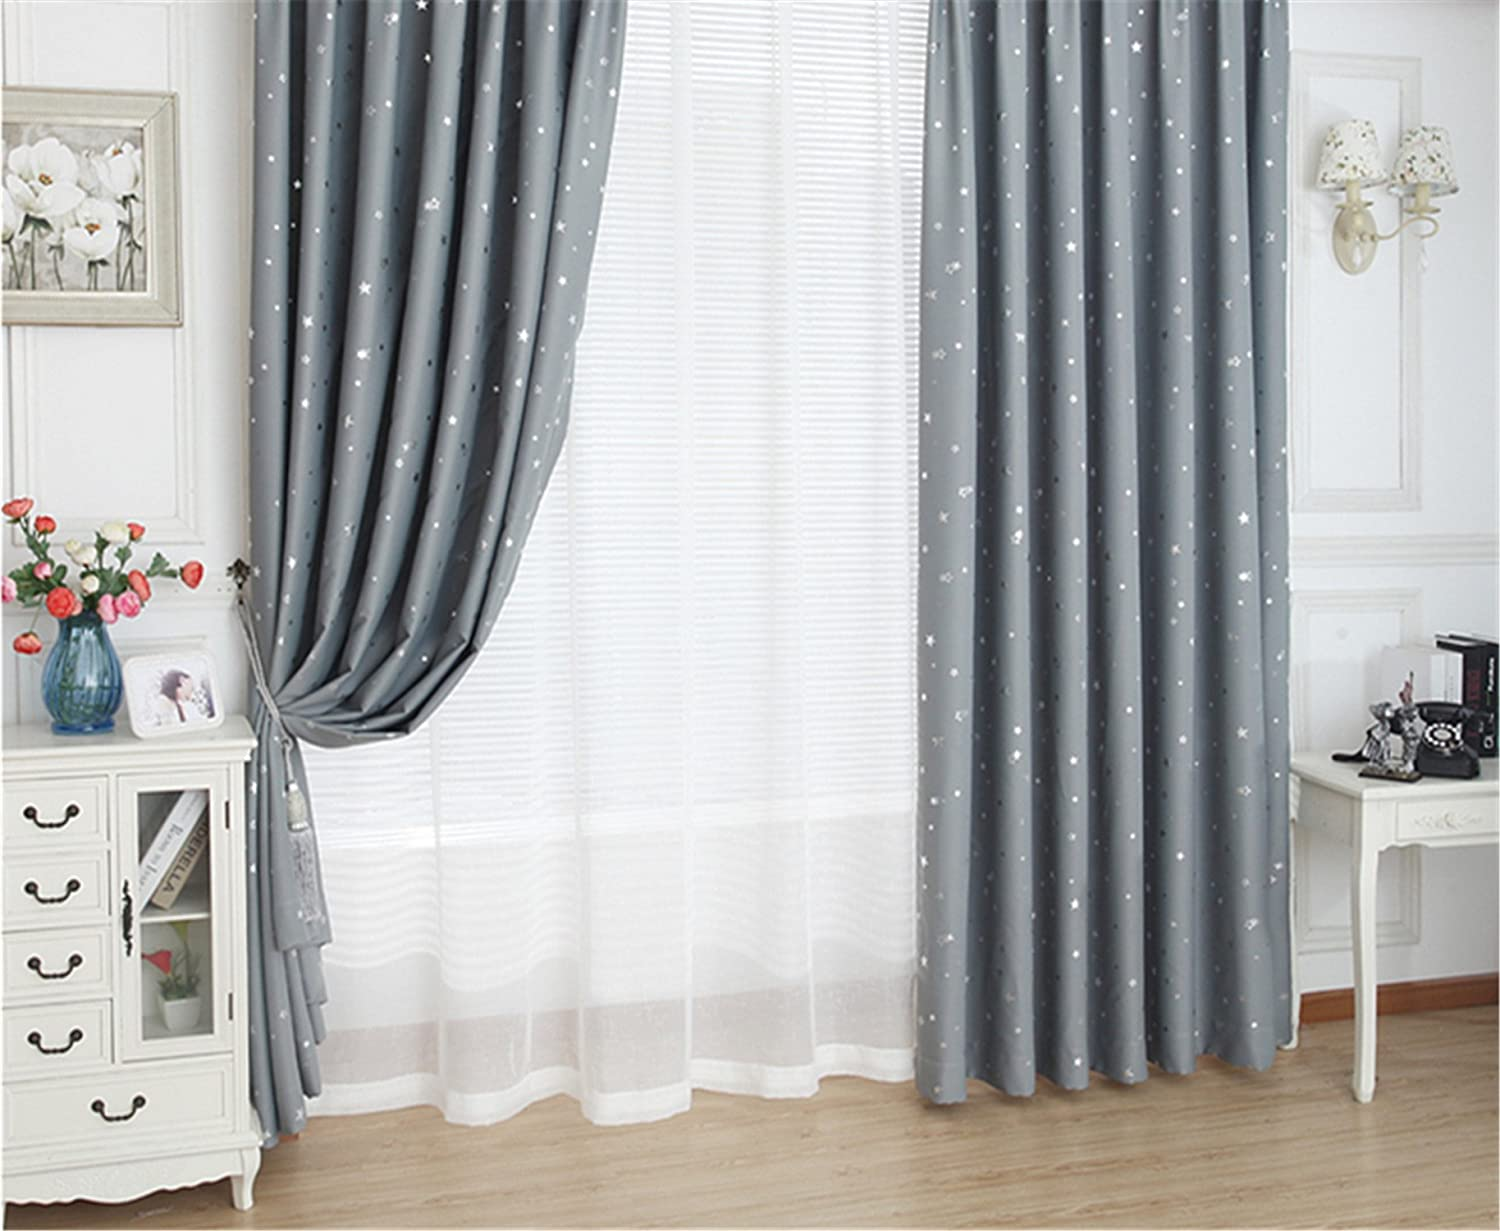 Home Concise Style Ring Top Eyelet Ready Made Curtains Blackout Star ...